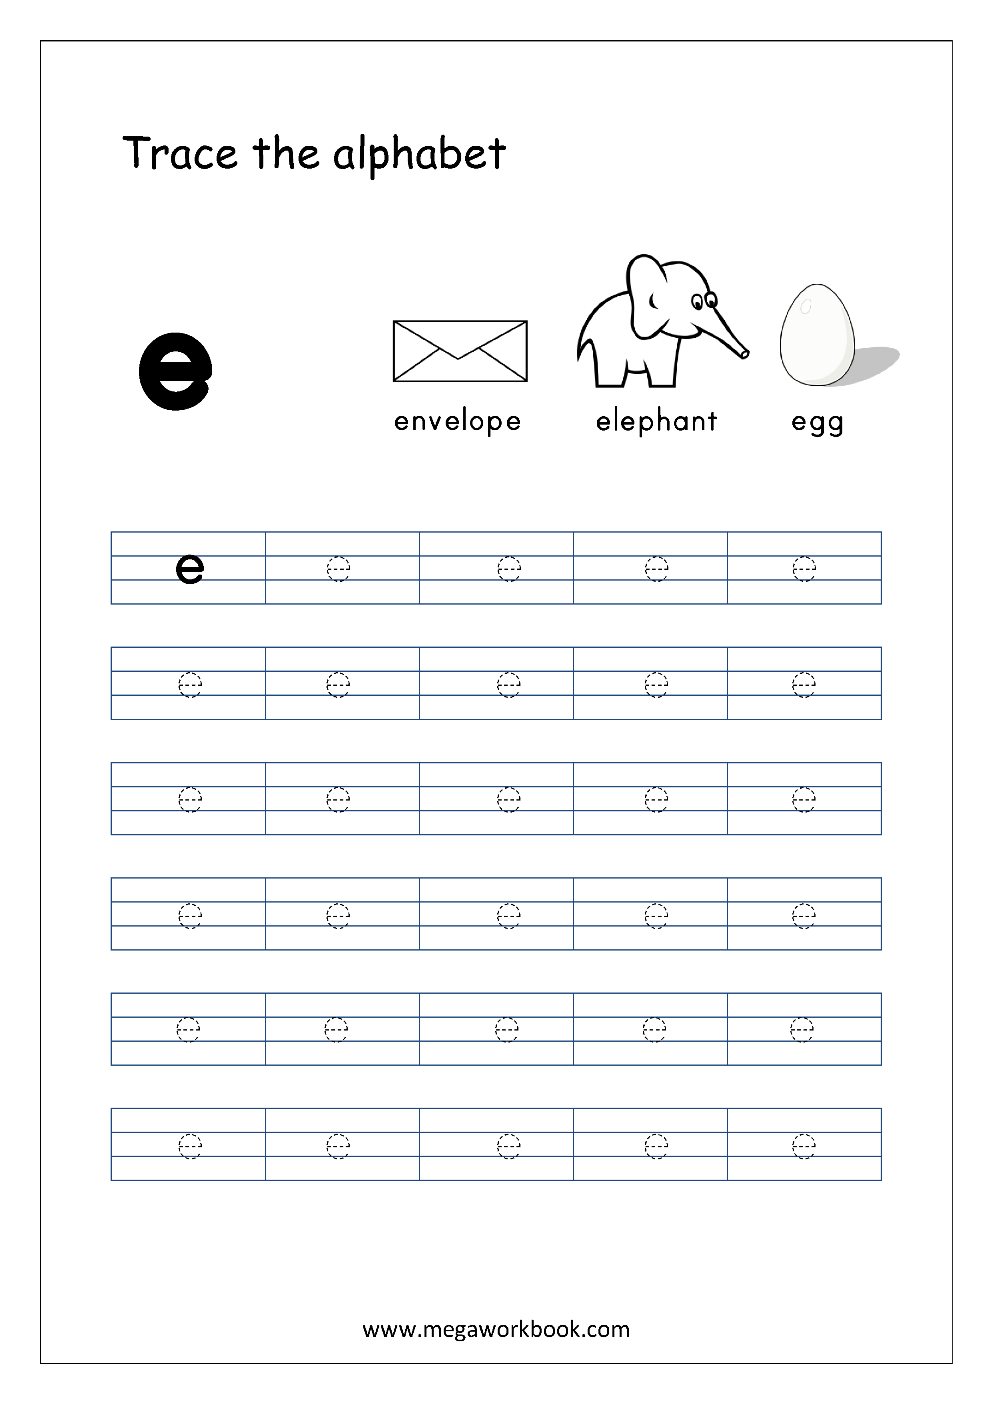 English Worksheet - Alphabet Tracing - Small Letter E regarding Alphabet Tracing Worksheets E